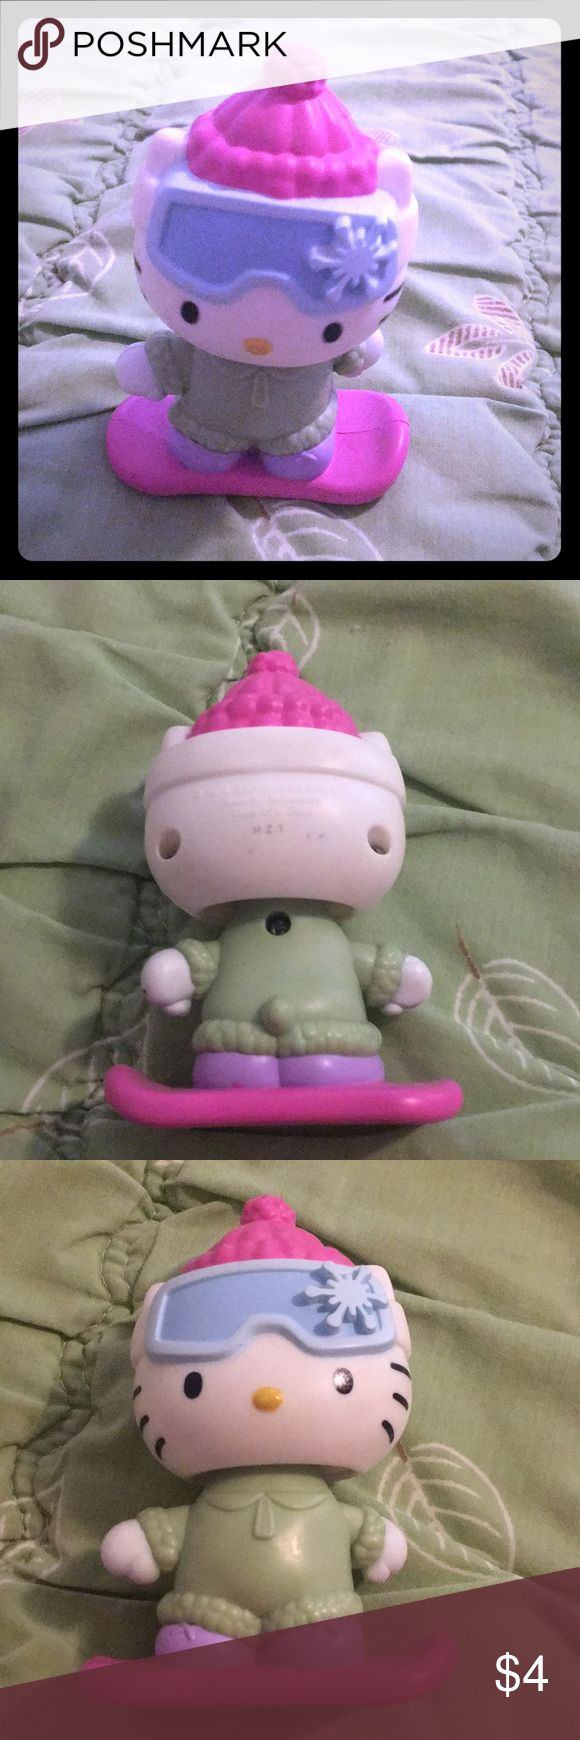 I just added this listing on Poshmark: McDonalds Hello Kitty Happy Meal toy. #shopmycloset #poshmark #fashion #shopping #style #forsale #Hello Kitty #Other